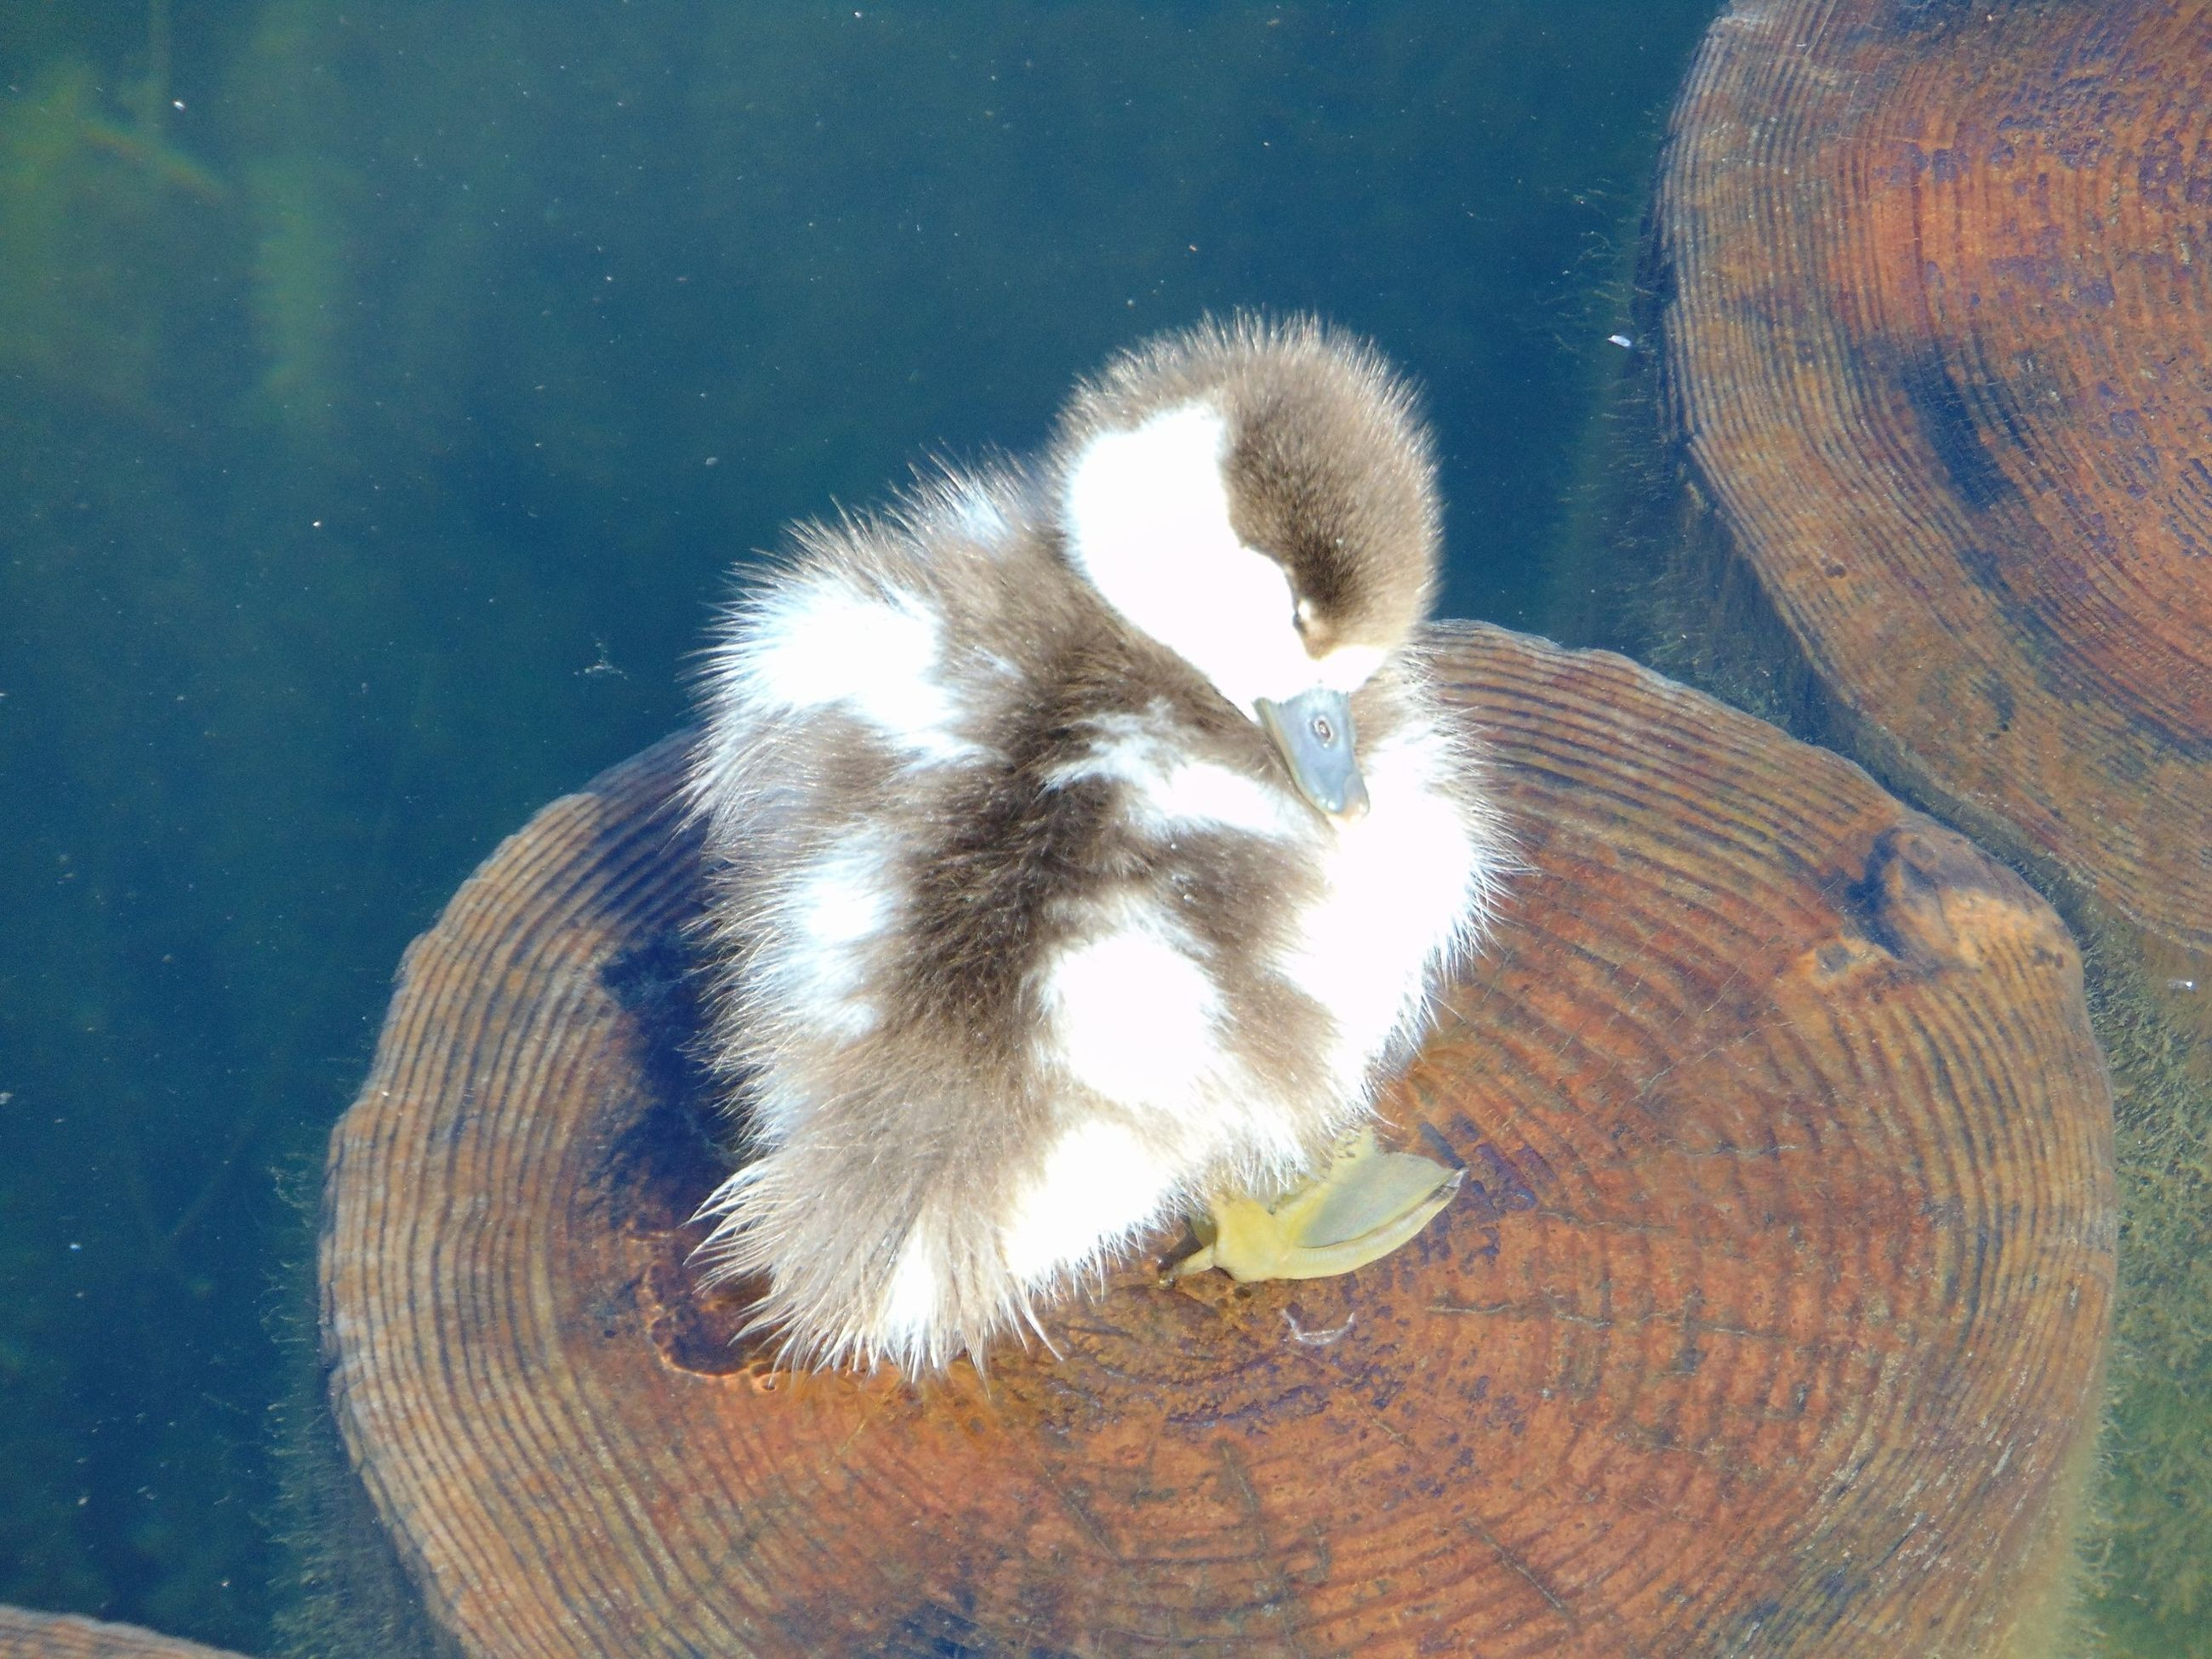 animal themes, animals in the wild, one animal, wildlife, water, swimming, lake, reflection, nature, high angle view, bird, close-up, waterfront, two animals, outdoors, no people, zoology, sea life, animals in captivity, duck